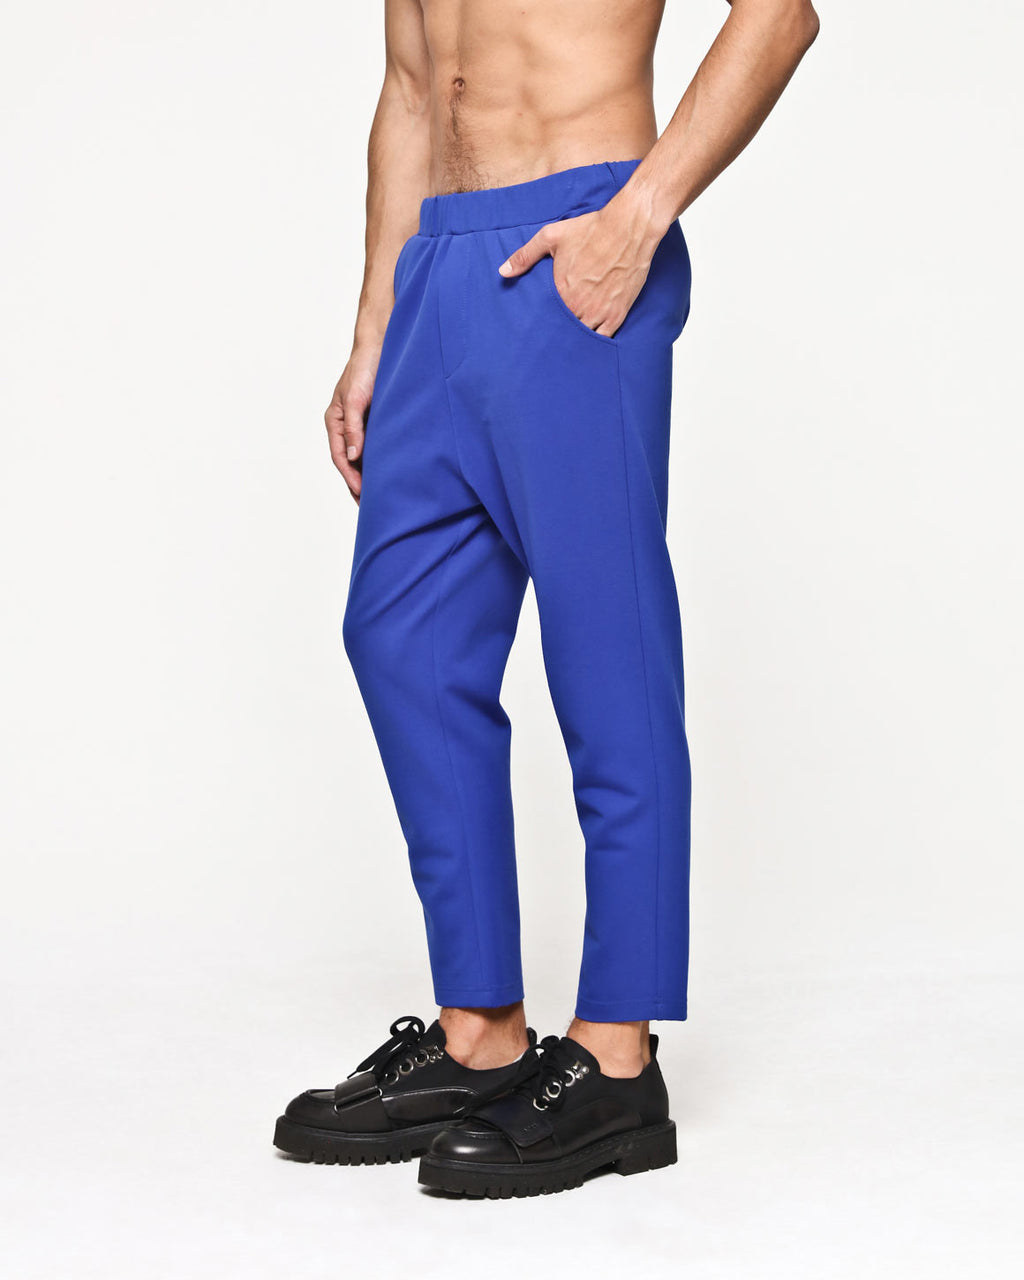 Manhattan Pants - Blue